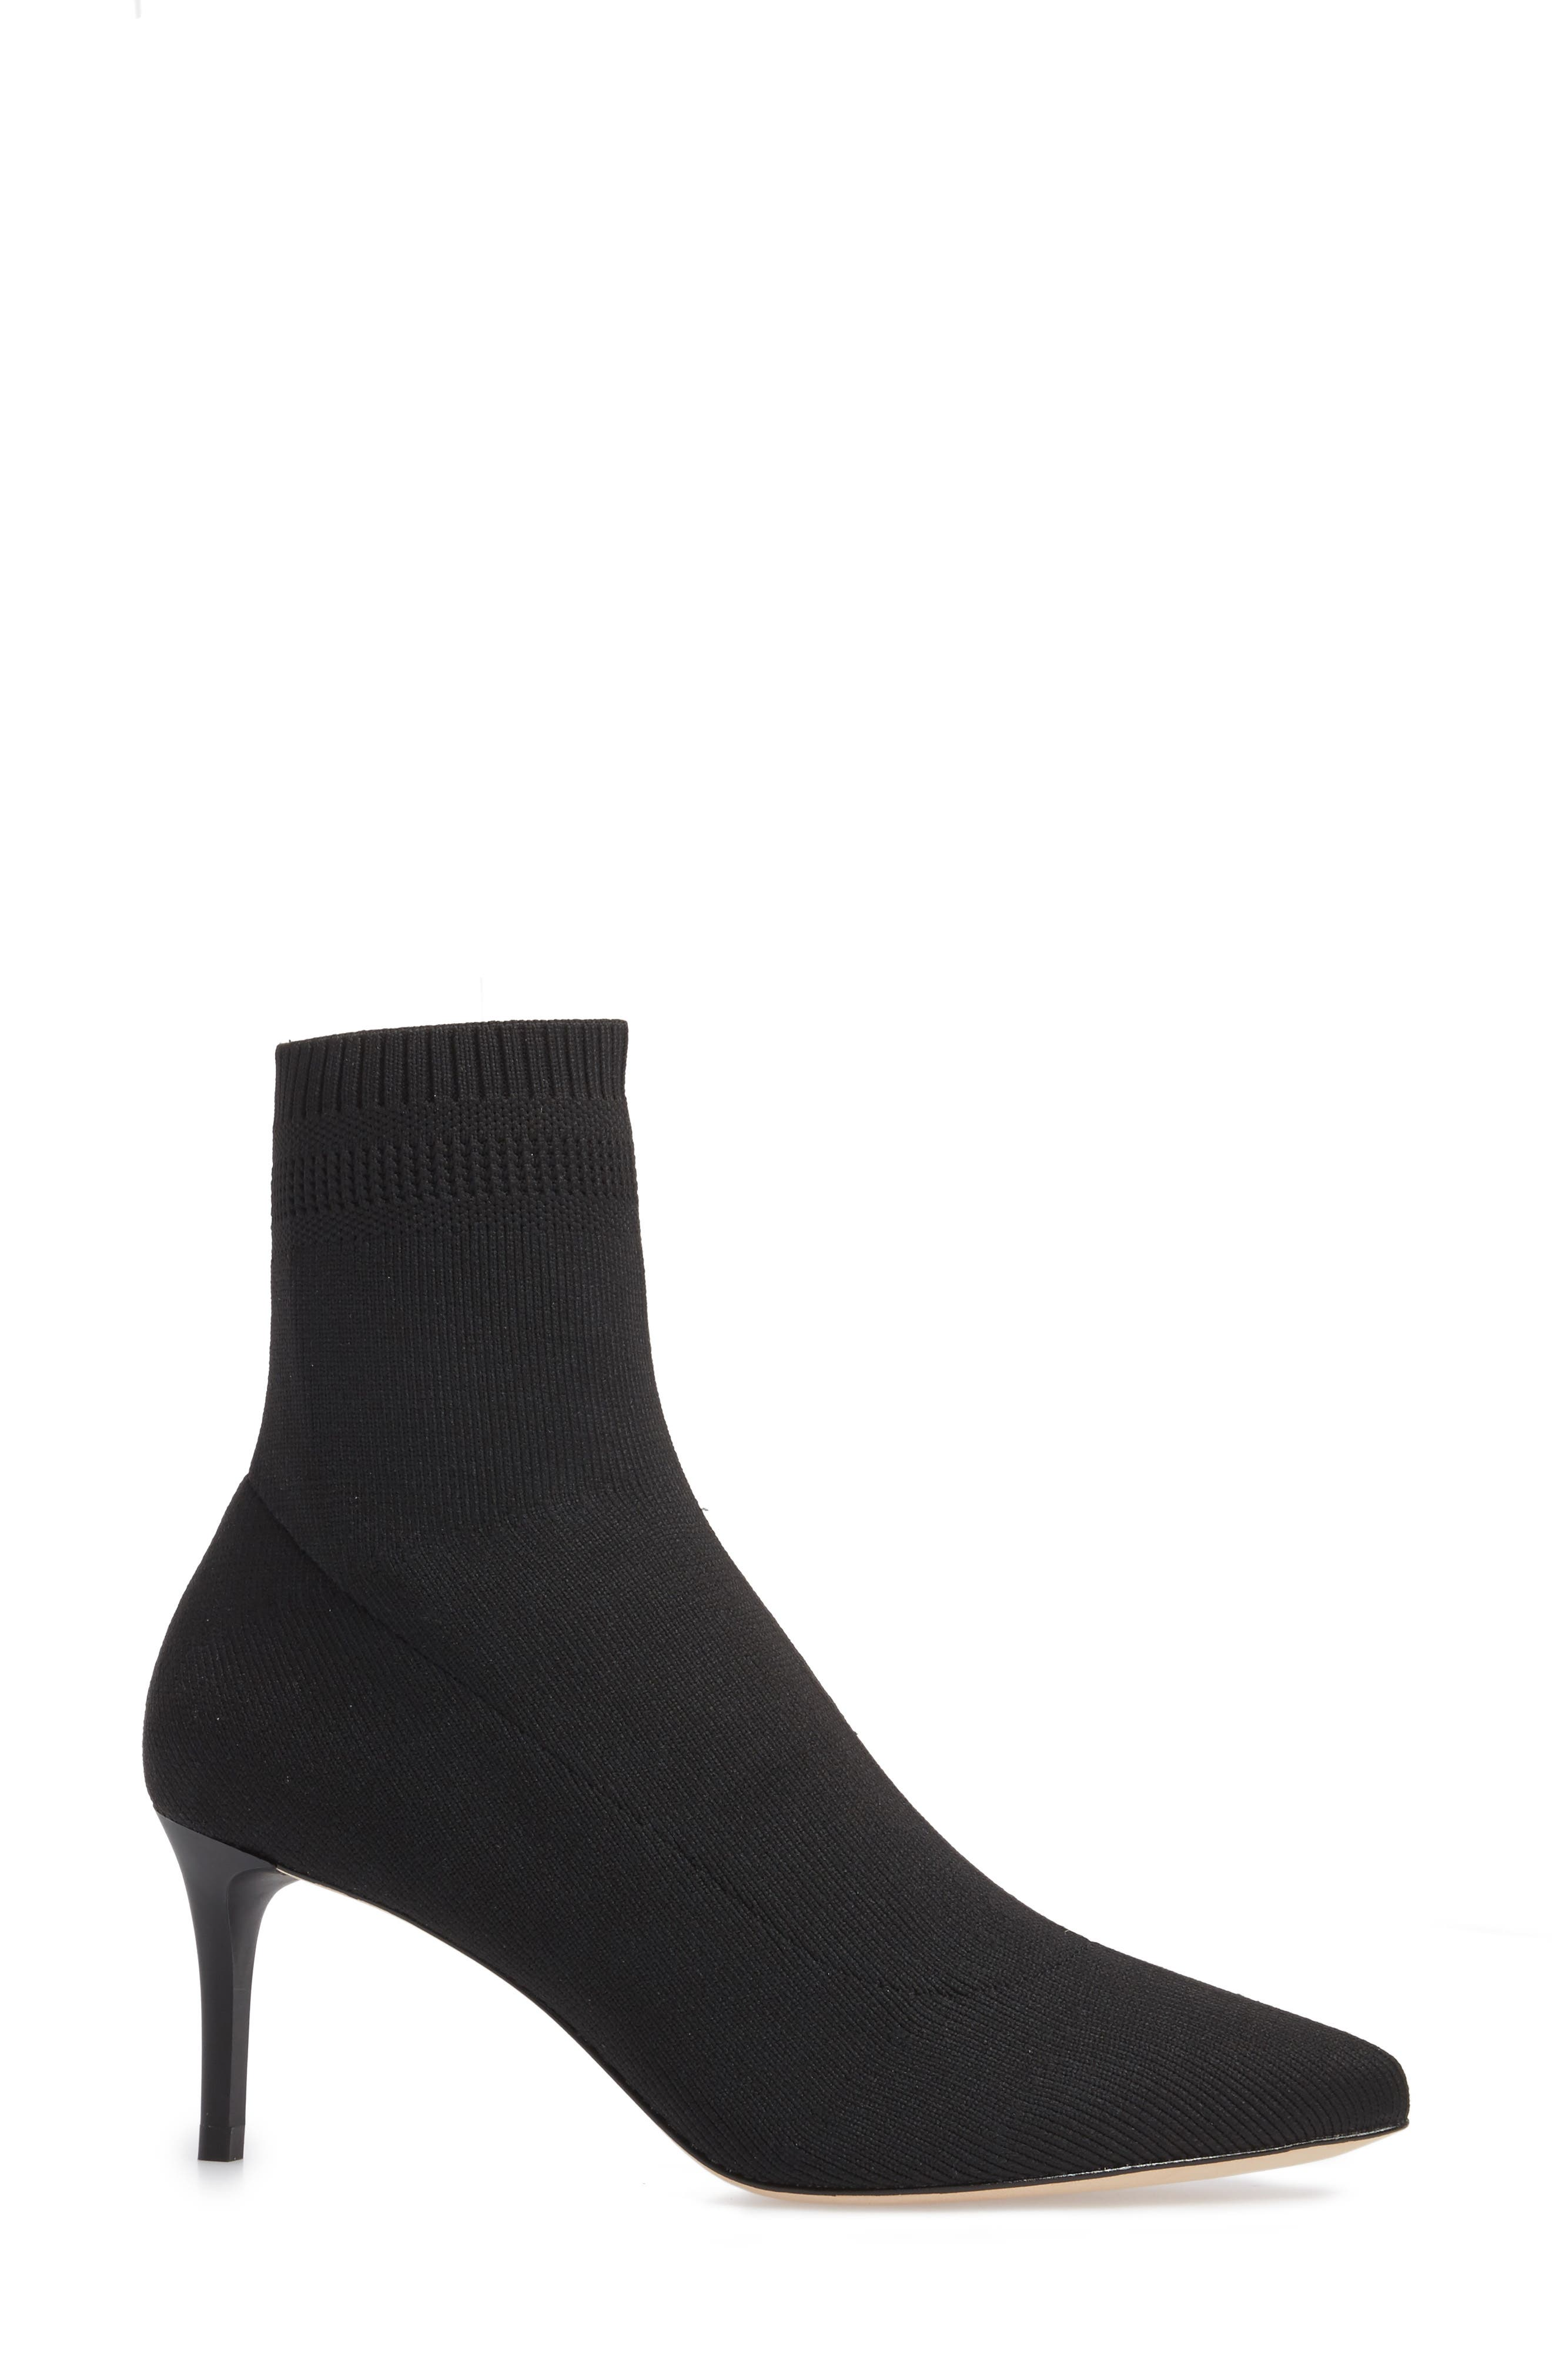 Daphne Bootie,                             Alternate thumbnail 3, color,                             Black